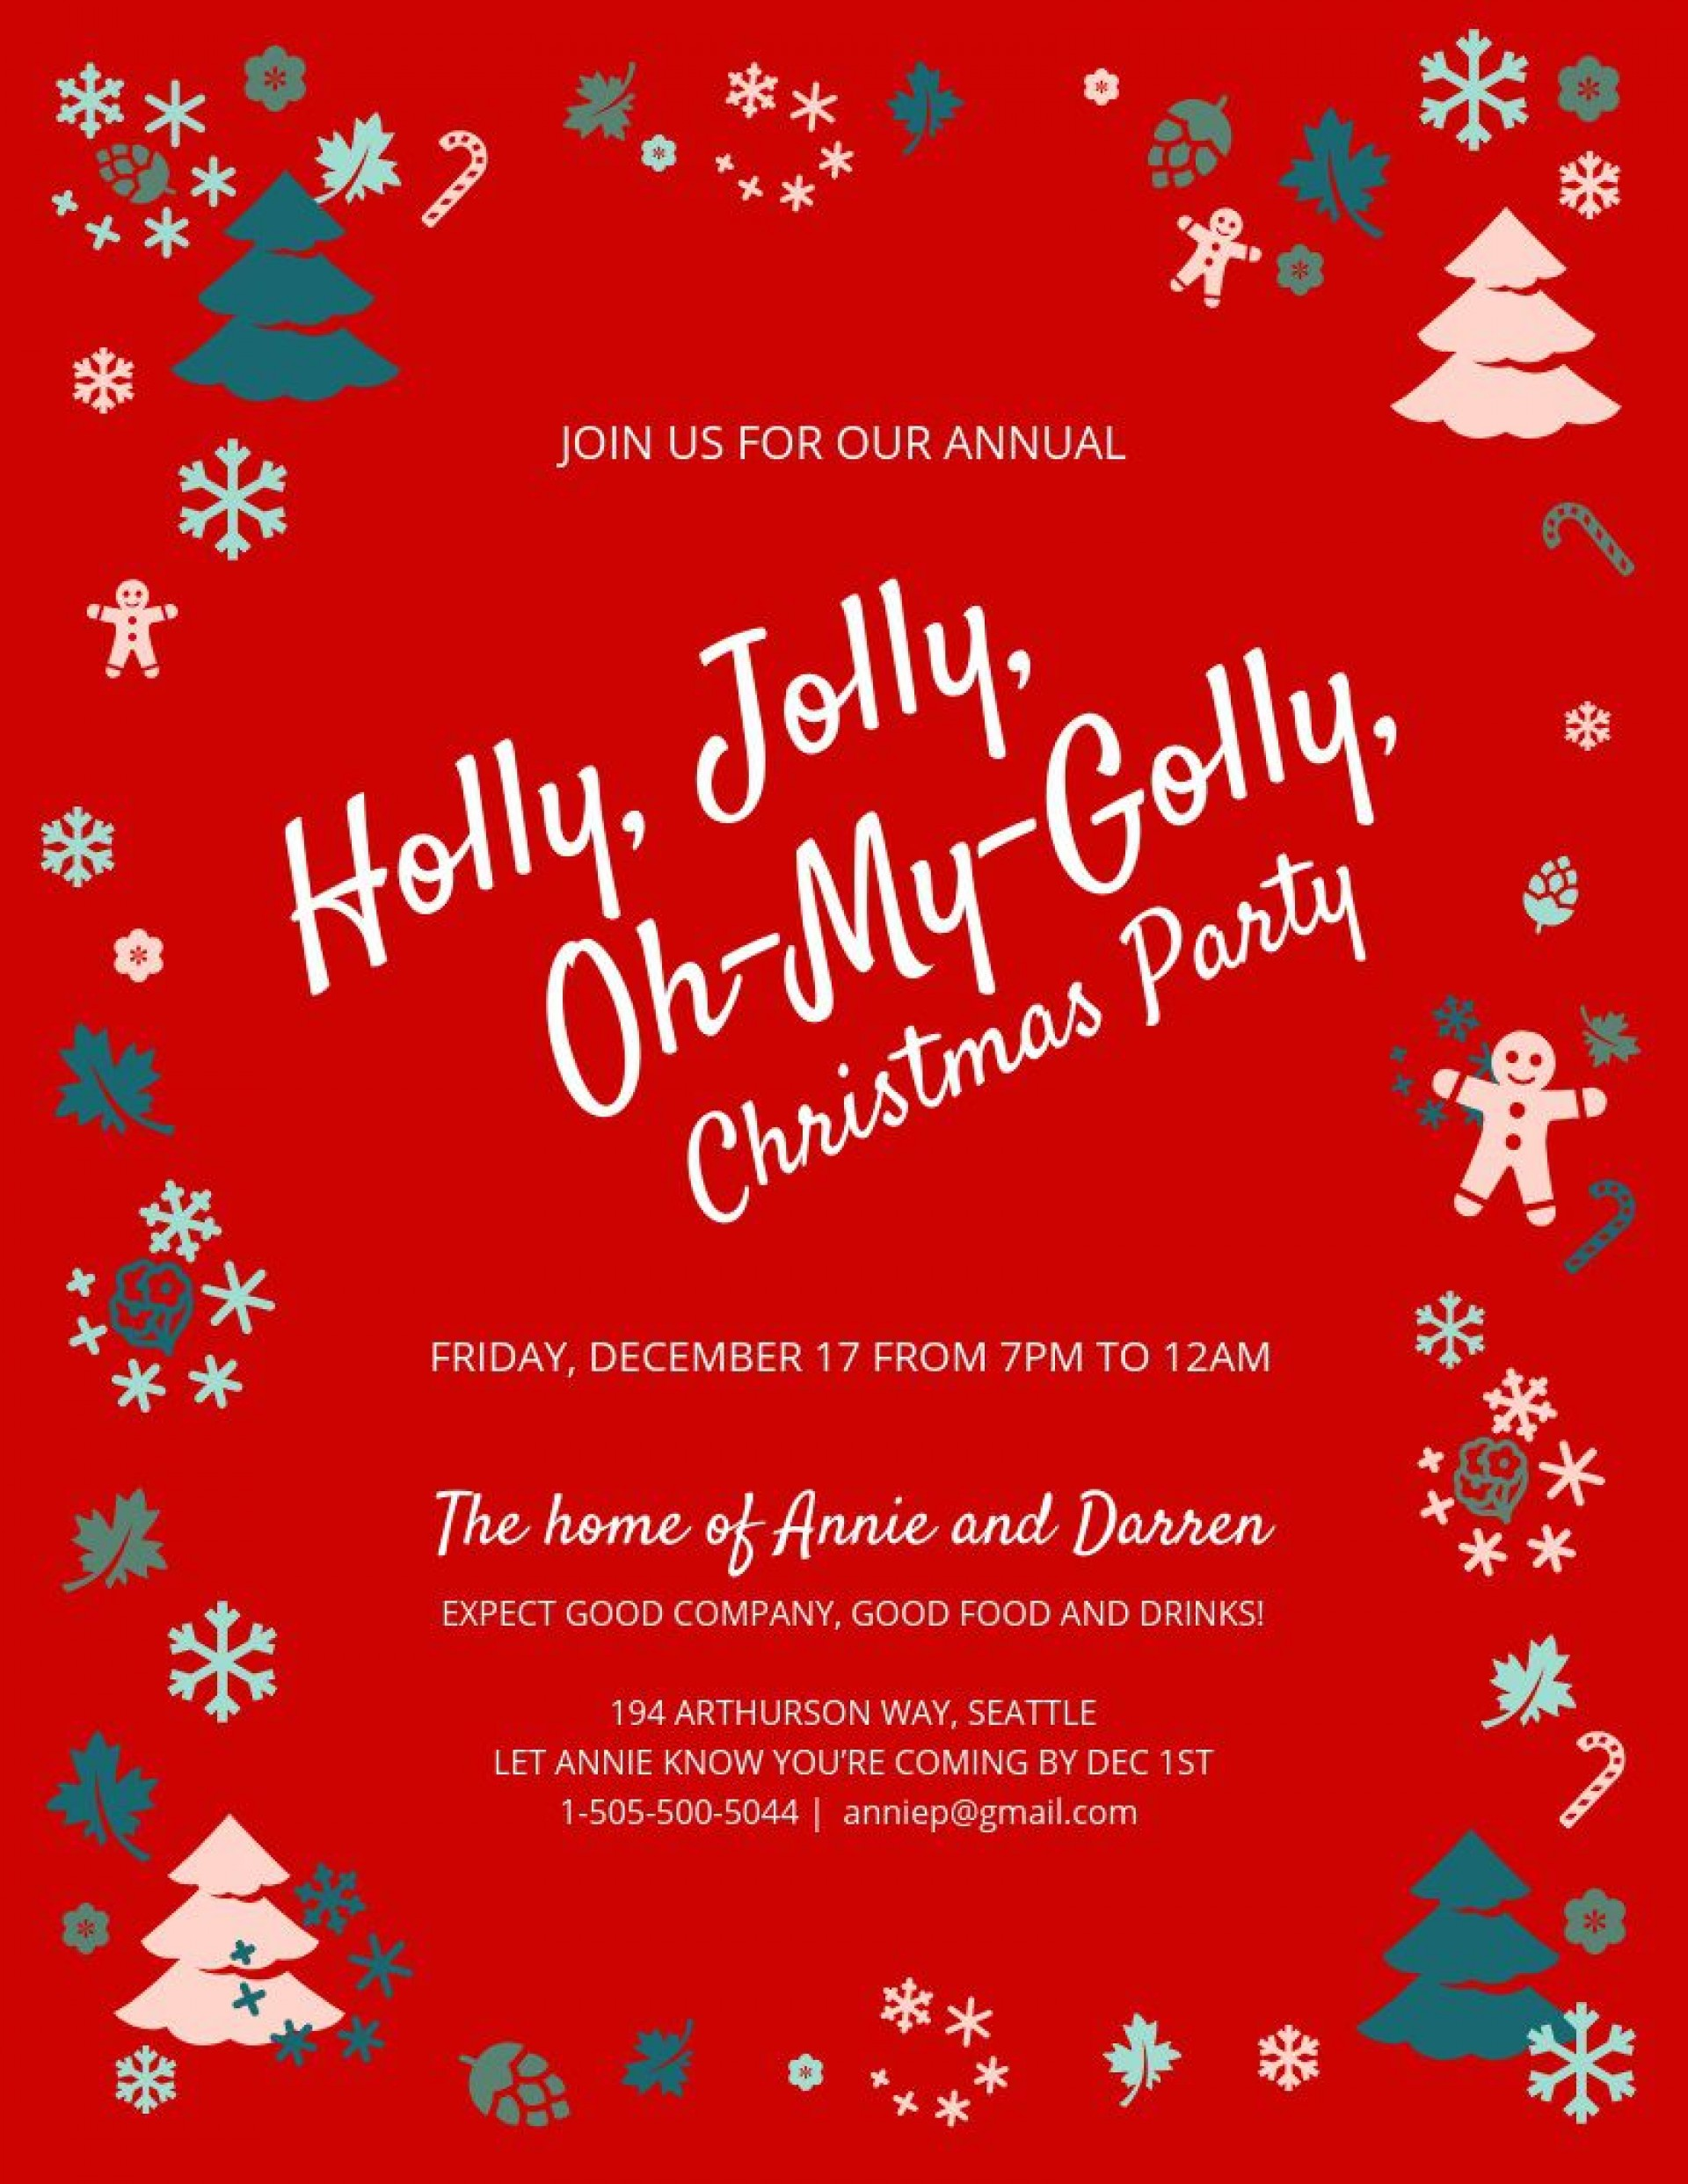 003 Awesome Christma Party Invitation Template Highest Clarity  Holiday Download Free Psd1920